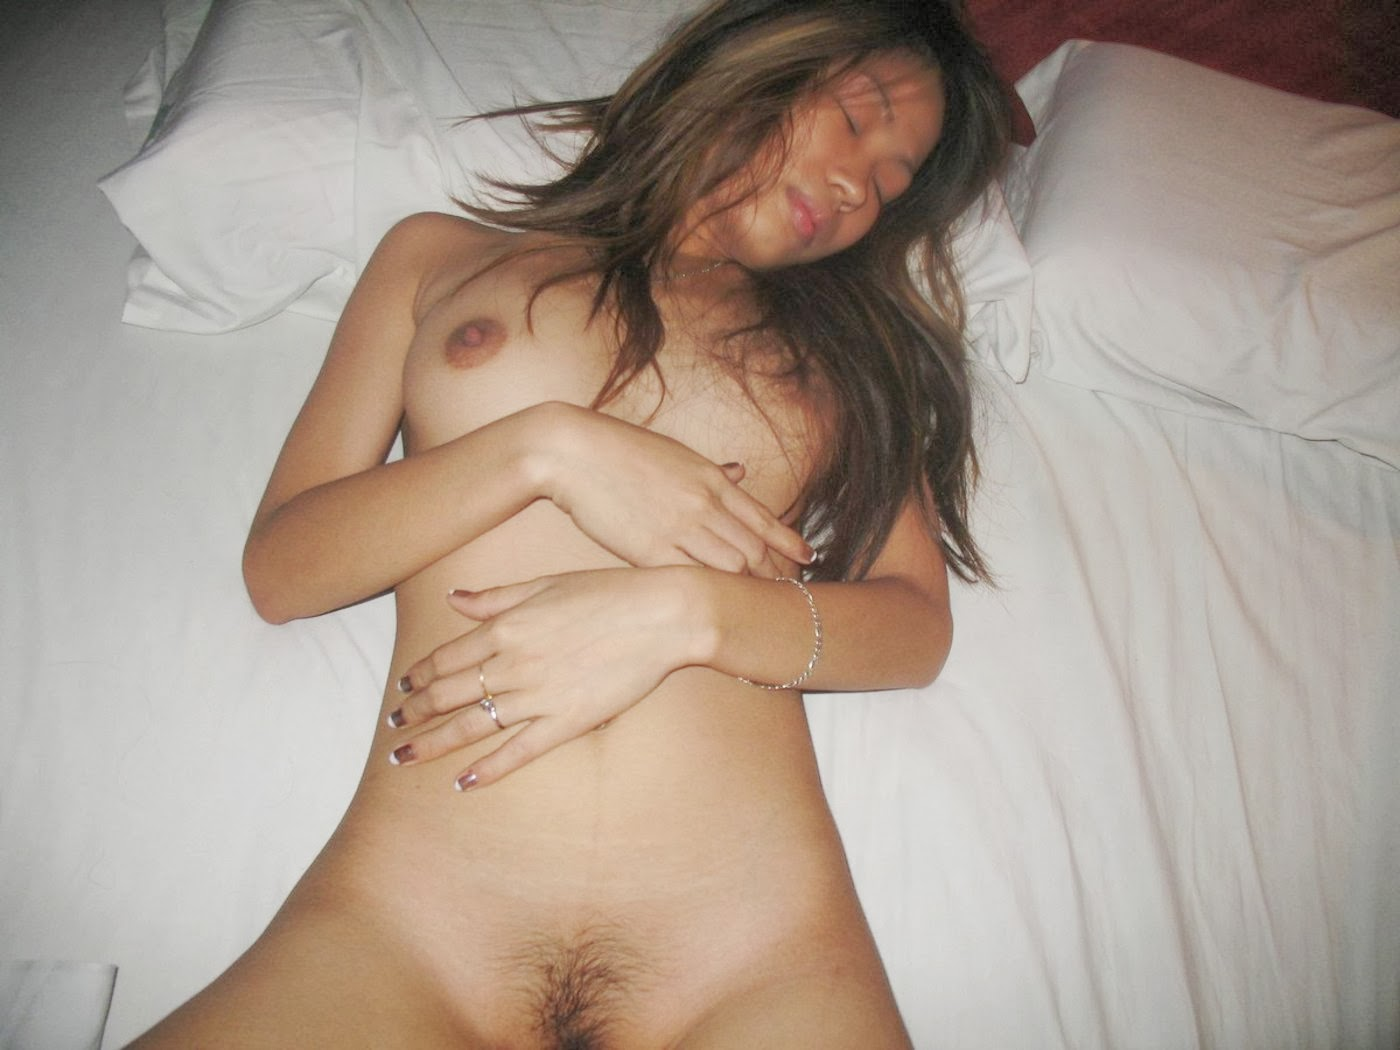 Amateur girls having hardcore sex